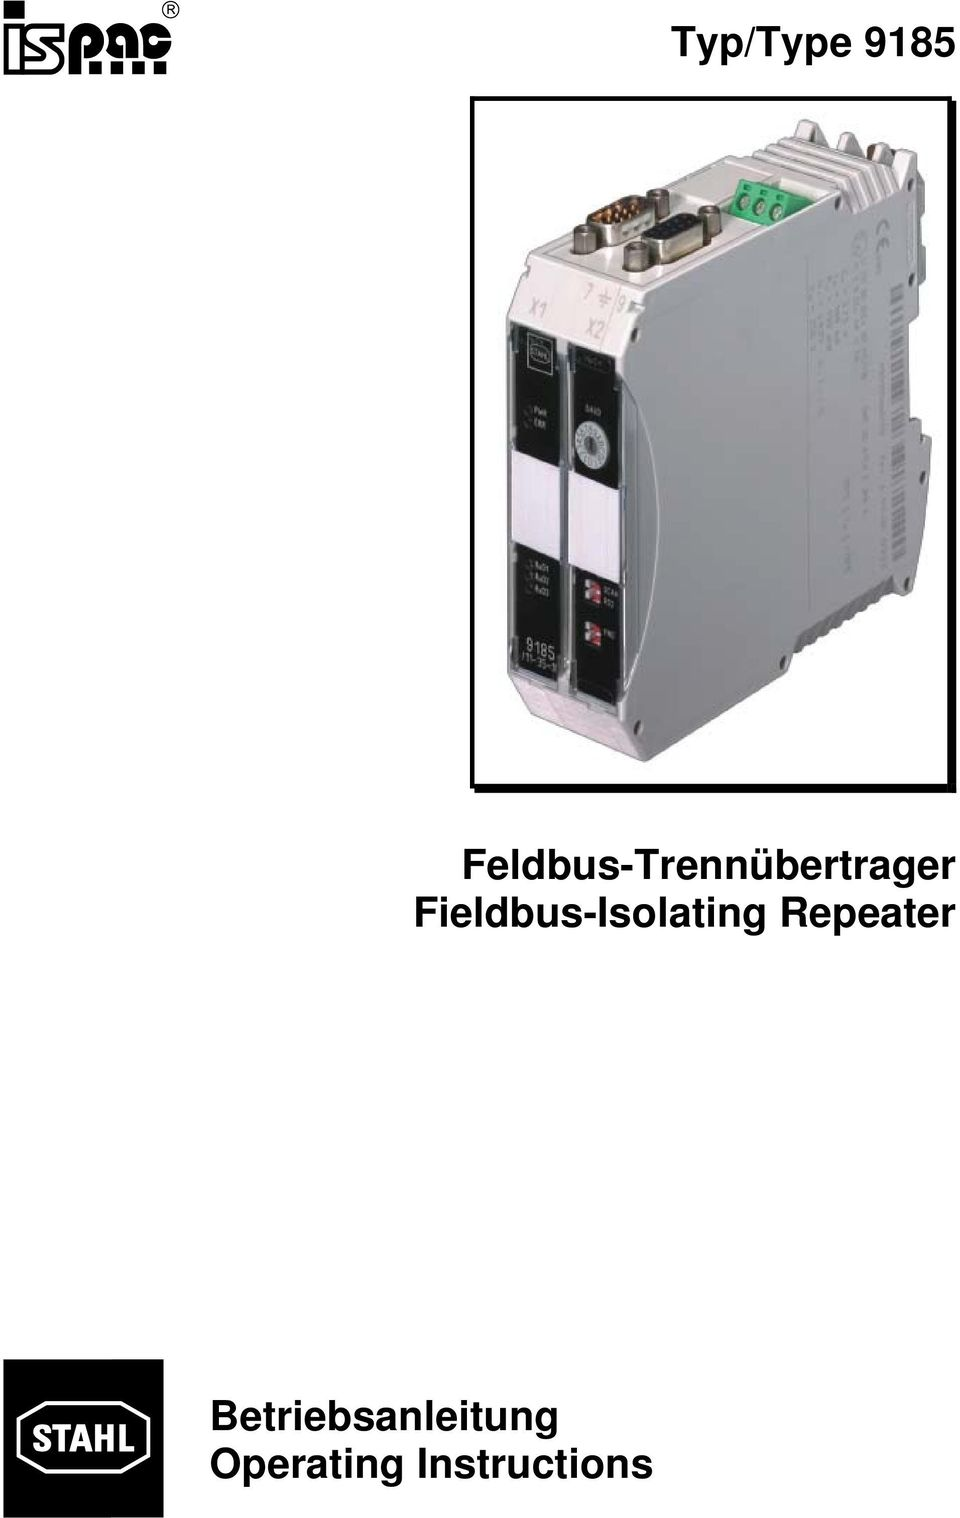 Fieldbus-Isolating